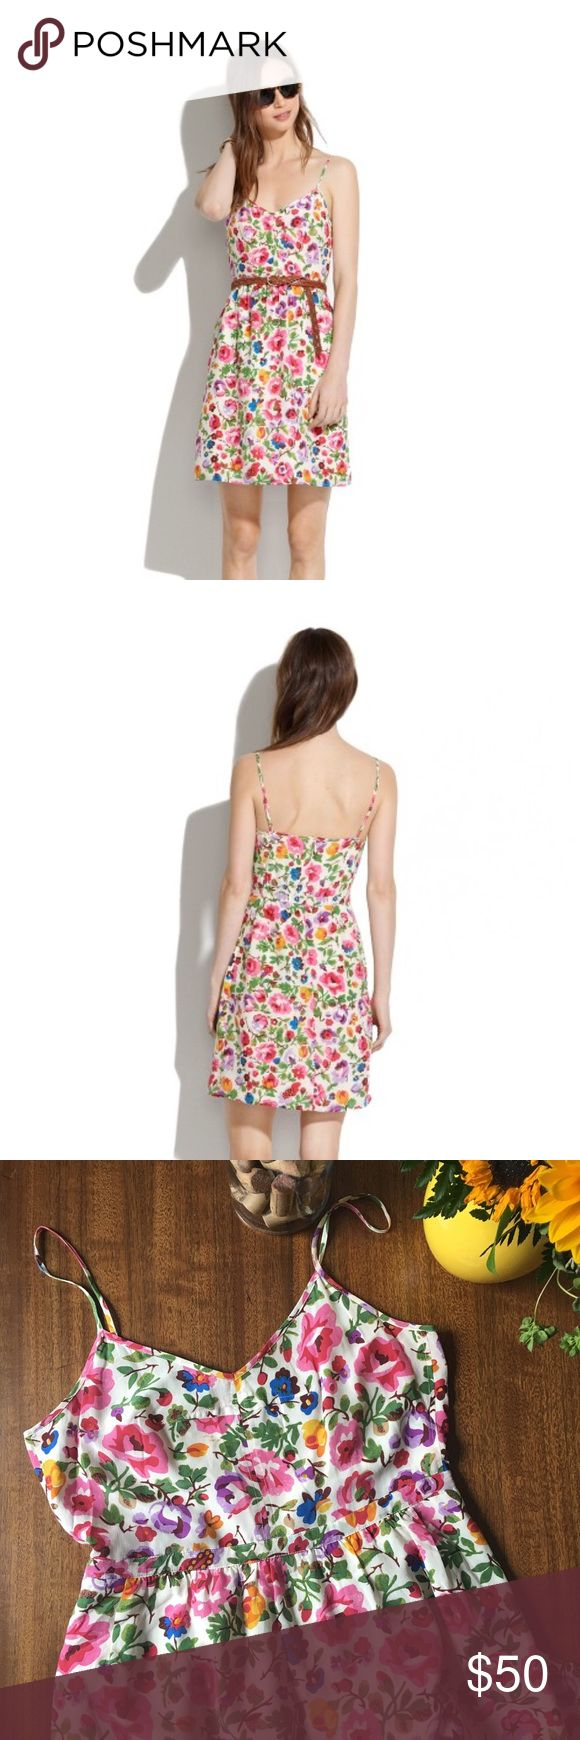 """MADEWELL • Silk Cami Dress in Flora Madewell Silk Cami Dress in Flora • Currently Sold Out Online • Retail : $155 • Fitted at Waist • Falls 35 3/8"""" from bodice • Zipper Back & Clasp • Pockets!! (see ) • Silk • Like New • Size 10 •• Get It In Time for Spring!!! ☀️ Madewell Dresses"""